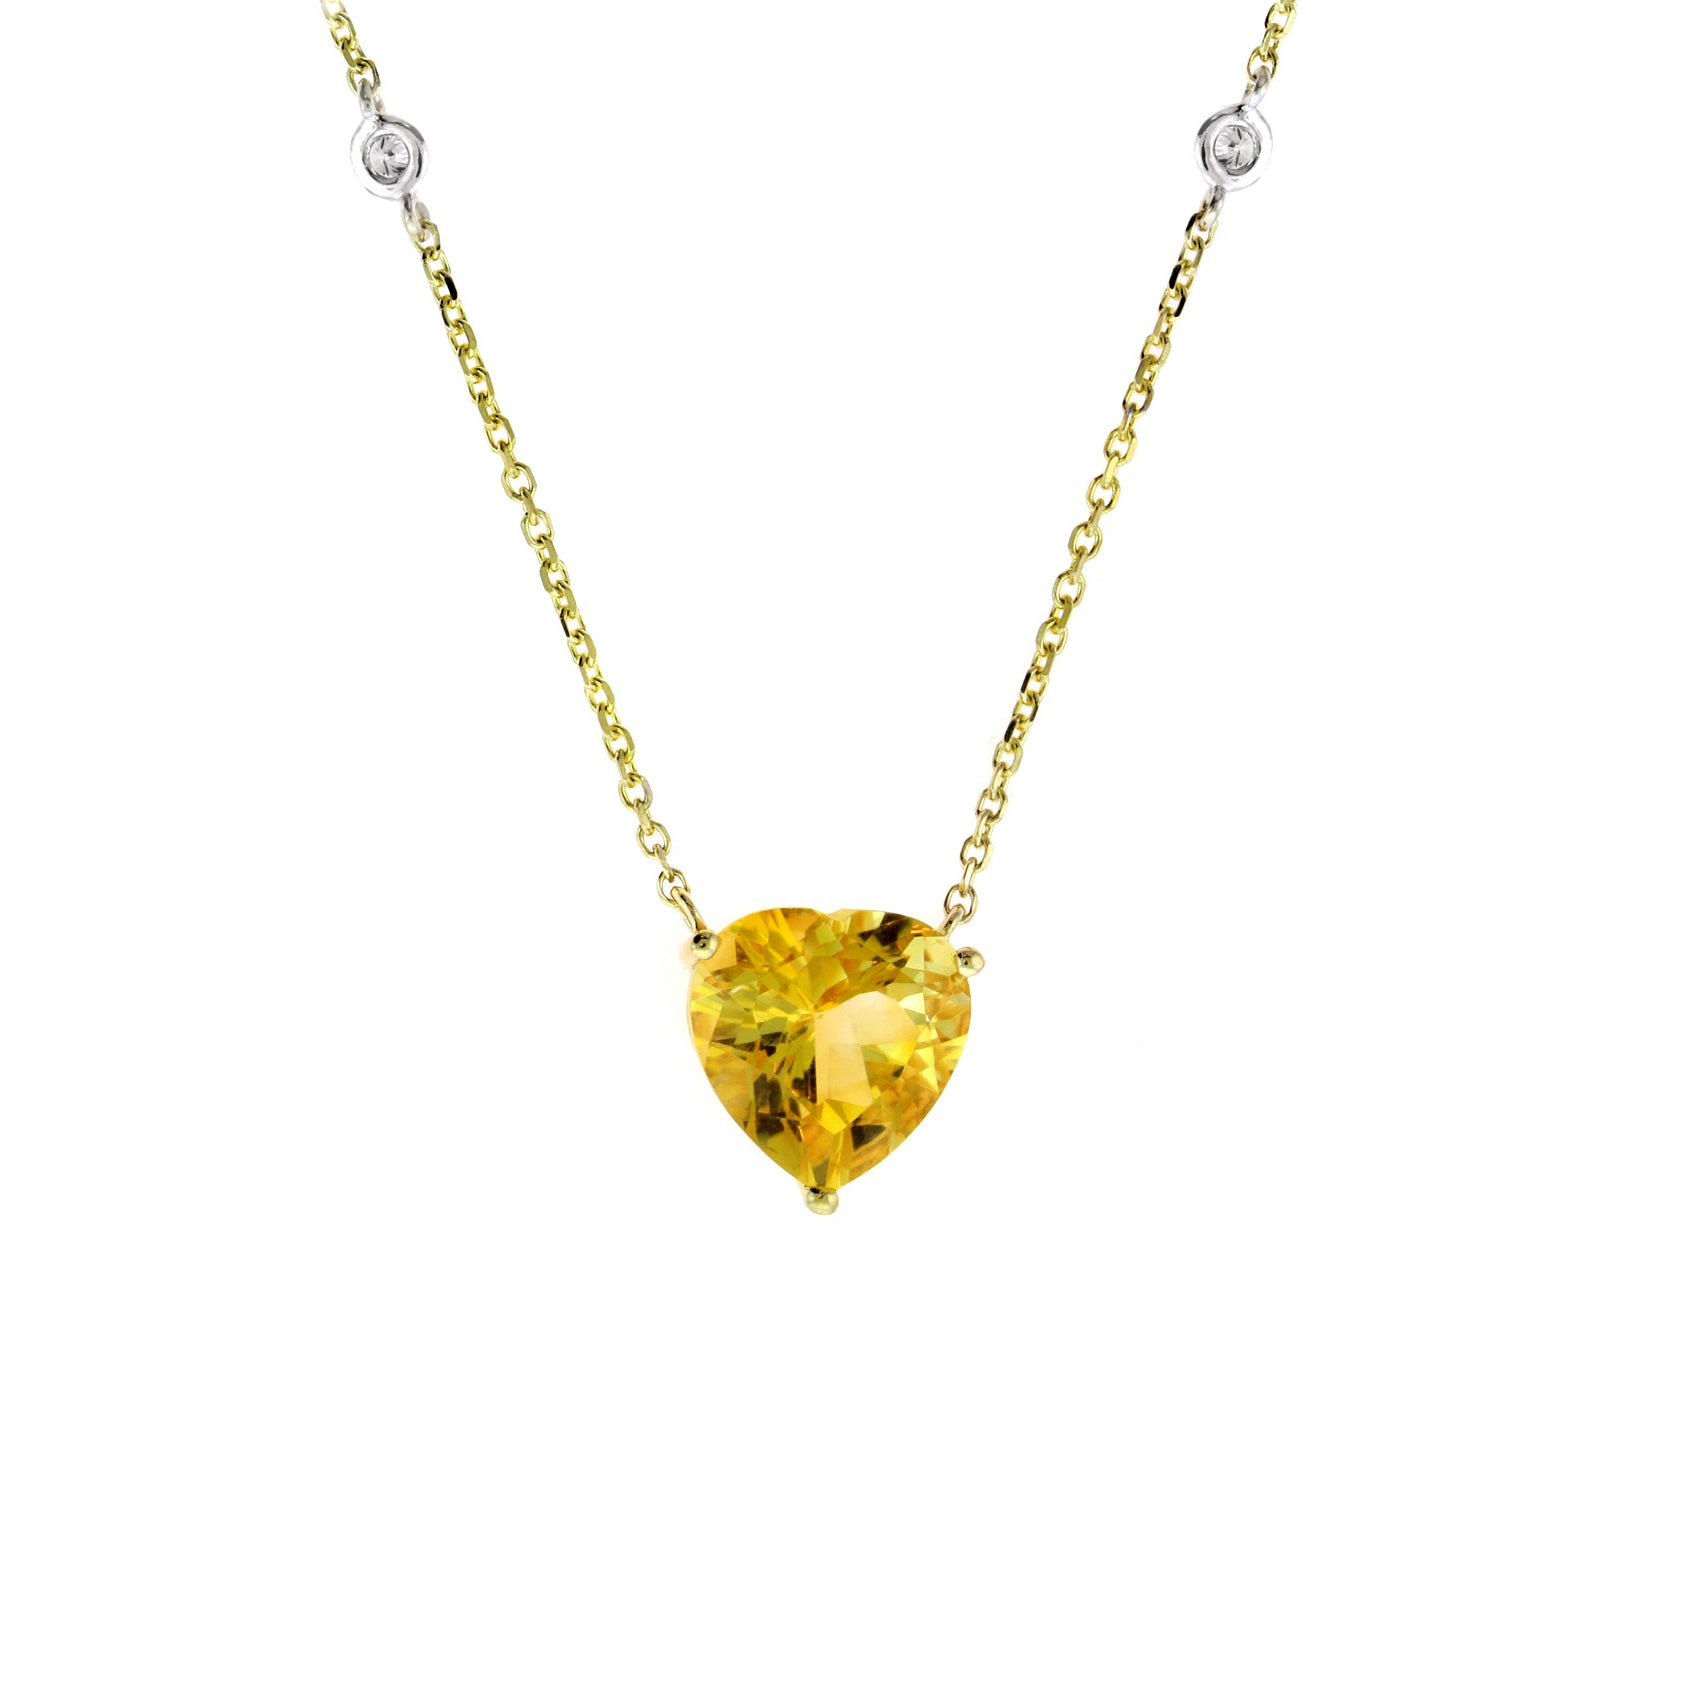 Citrine Heart Necklace With Diamond Accent, 14K Yellow Gold